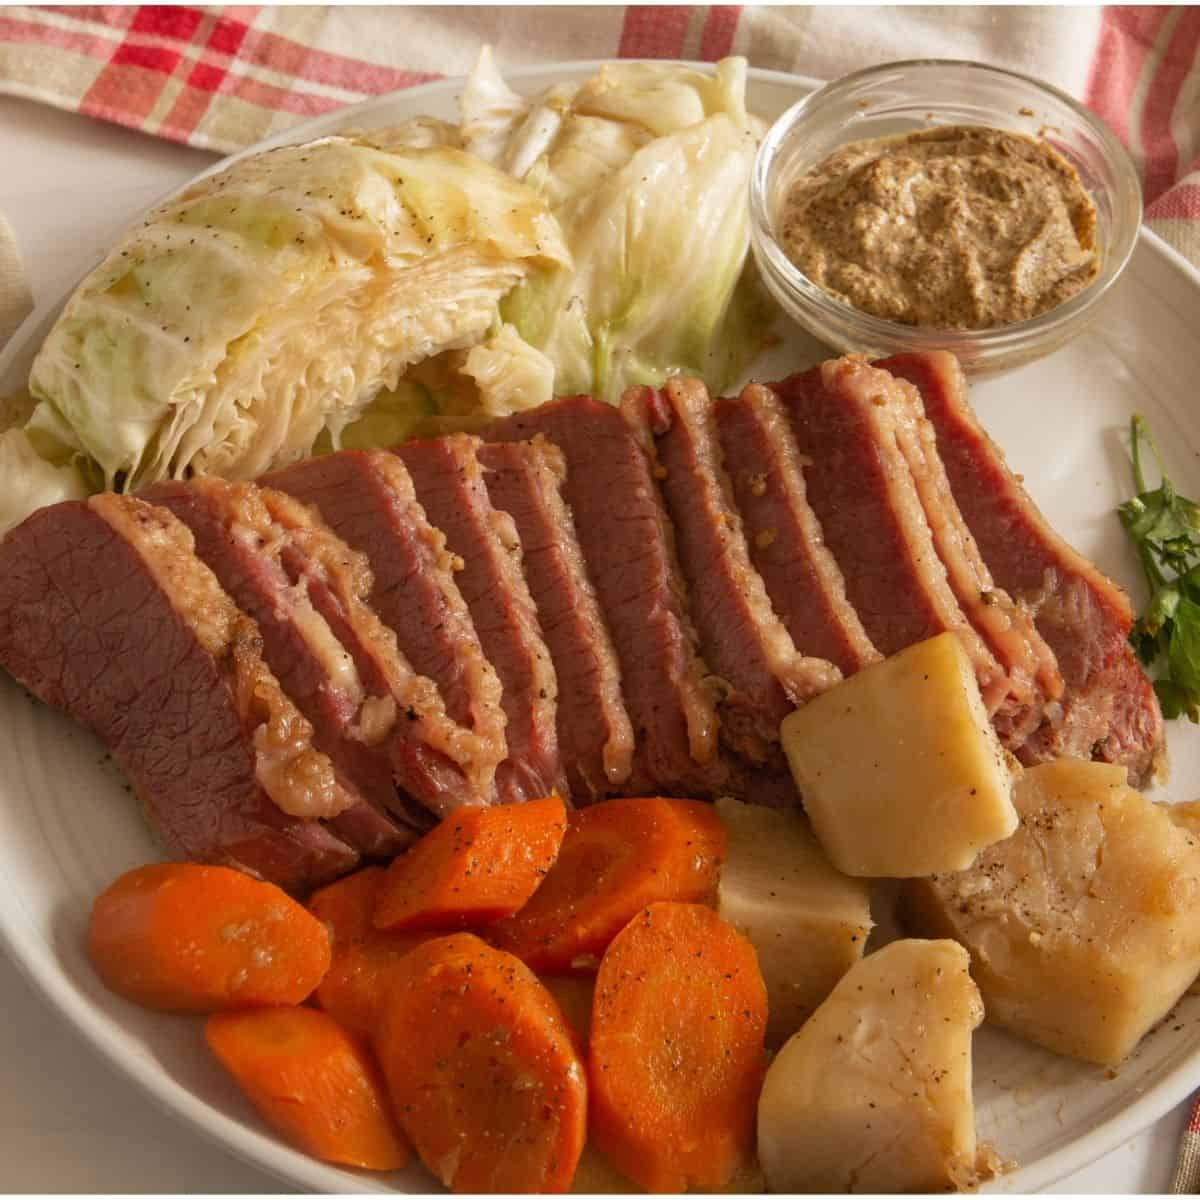 Sliced corned beef and cabbage with carrots and potatoes on a white plate.